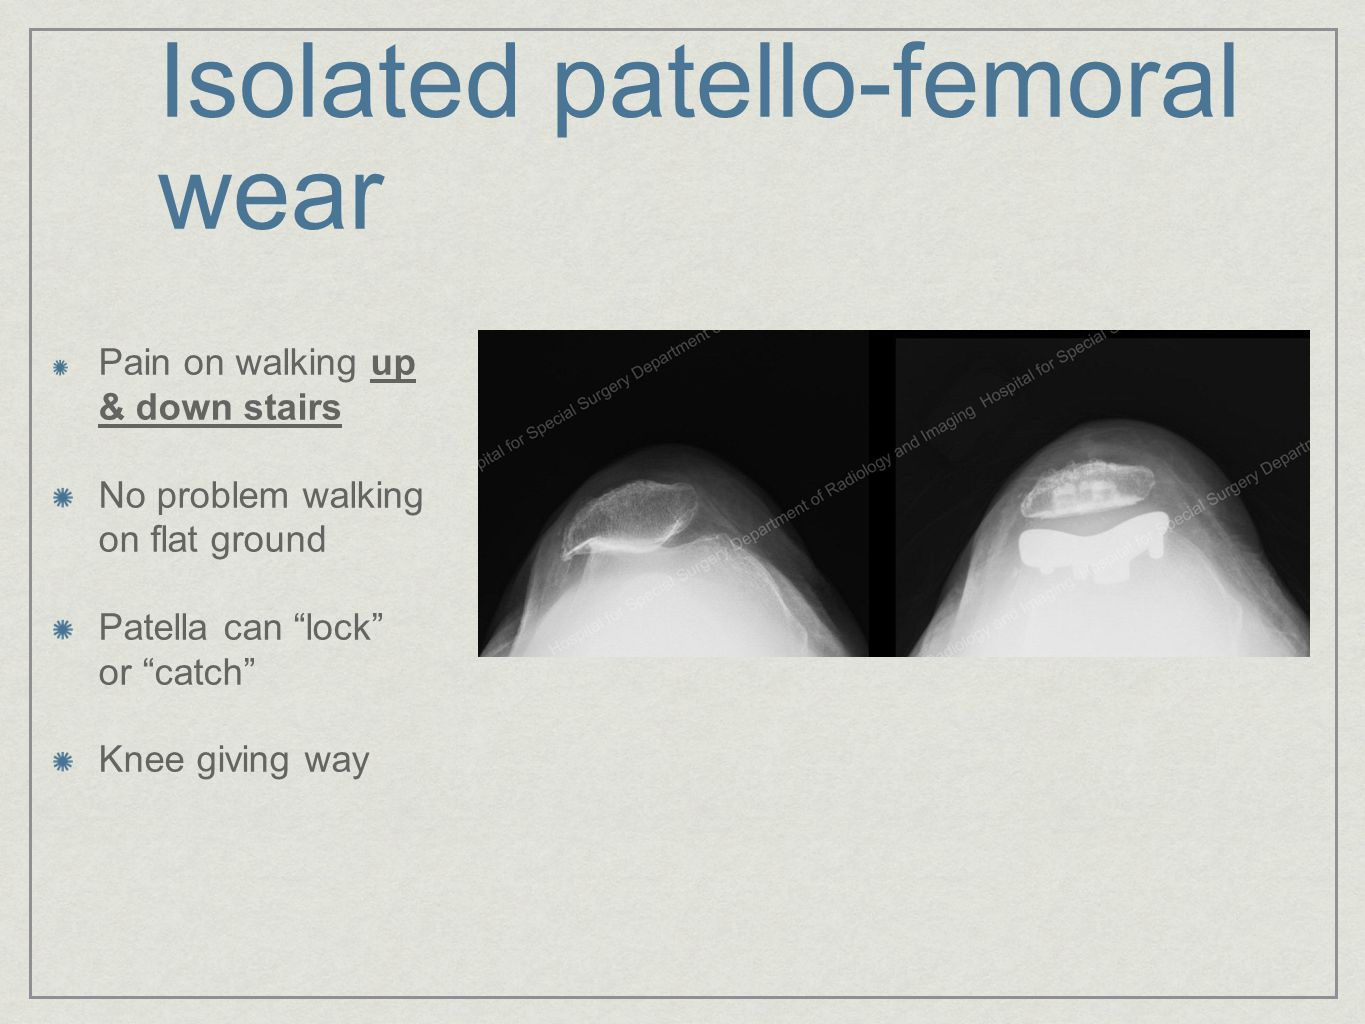 Isolated patello-femoral wear